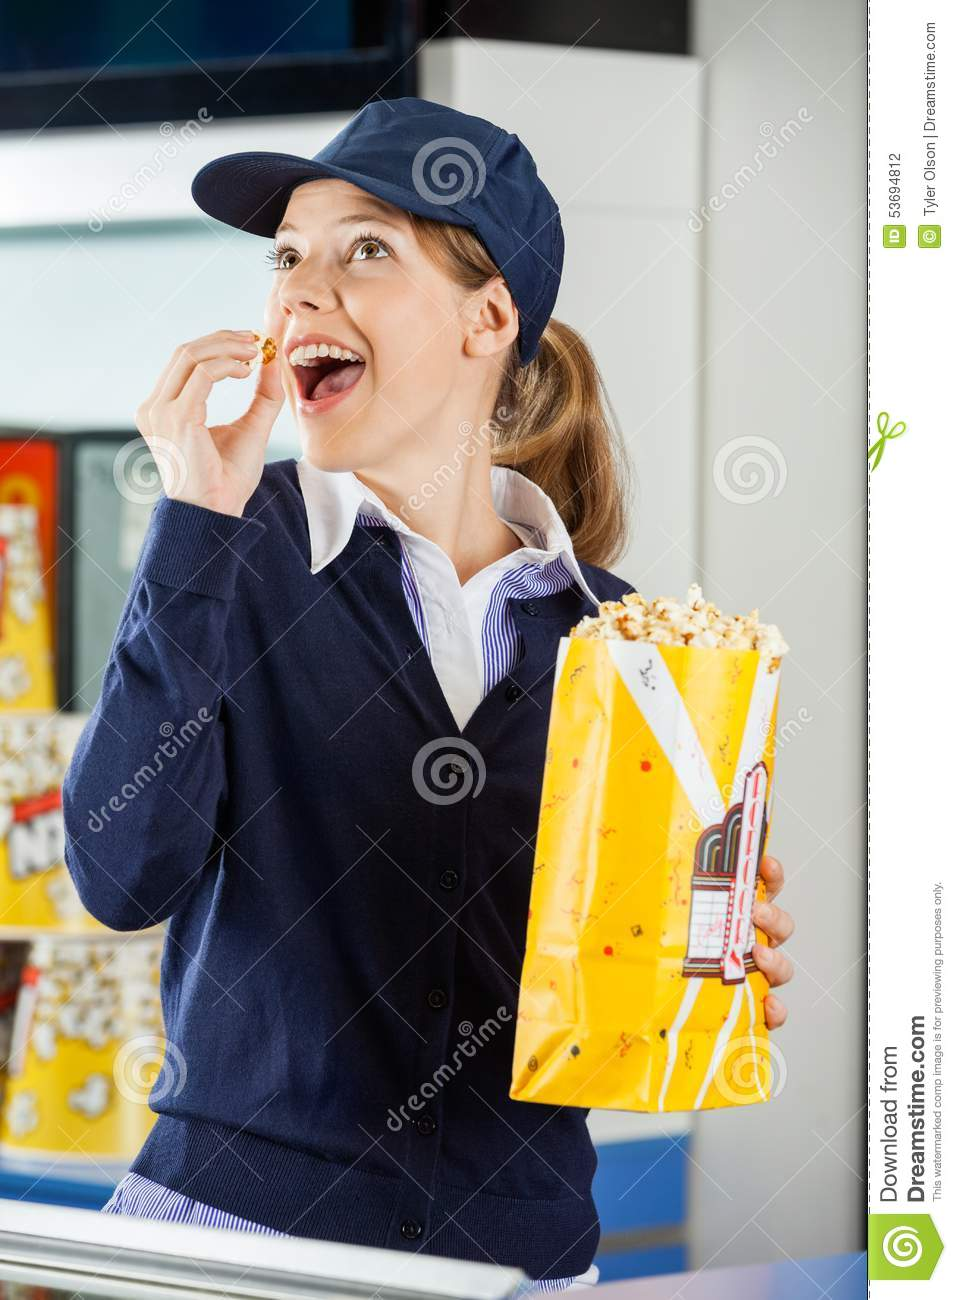 happy worker eating popcorn at cinema concession stock photo happy worker eating popcorn at cinema concession